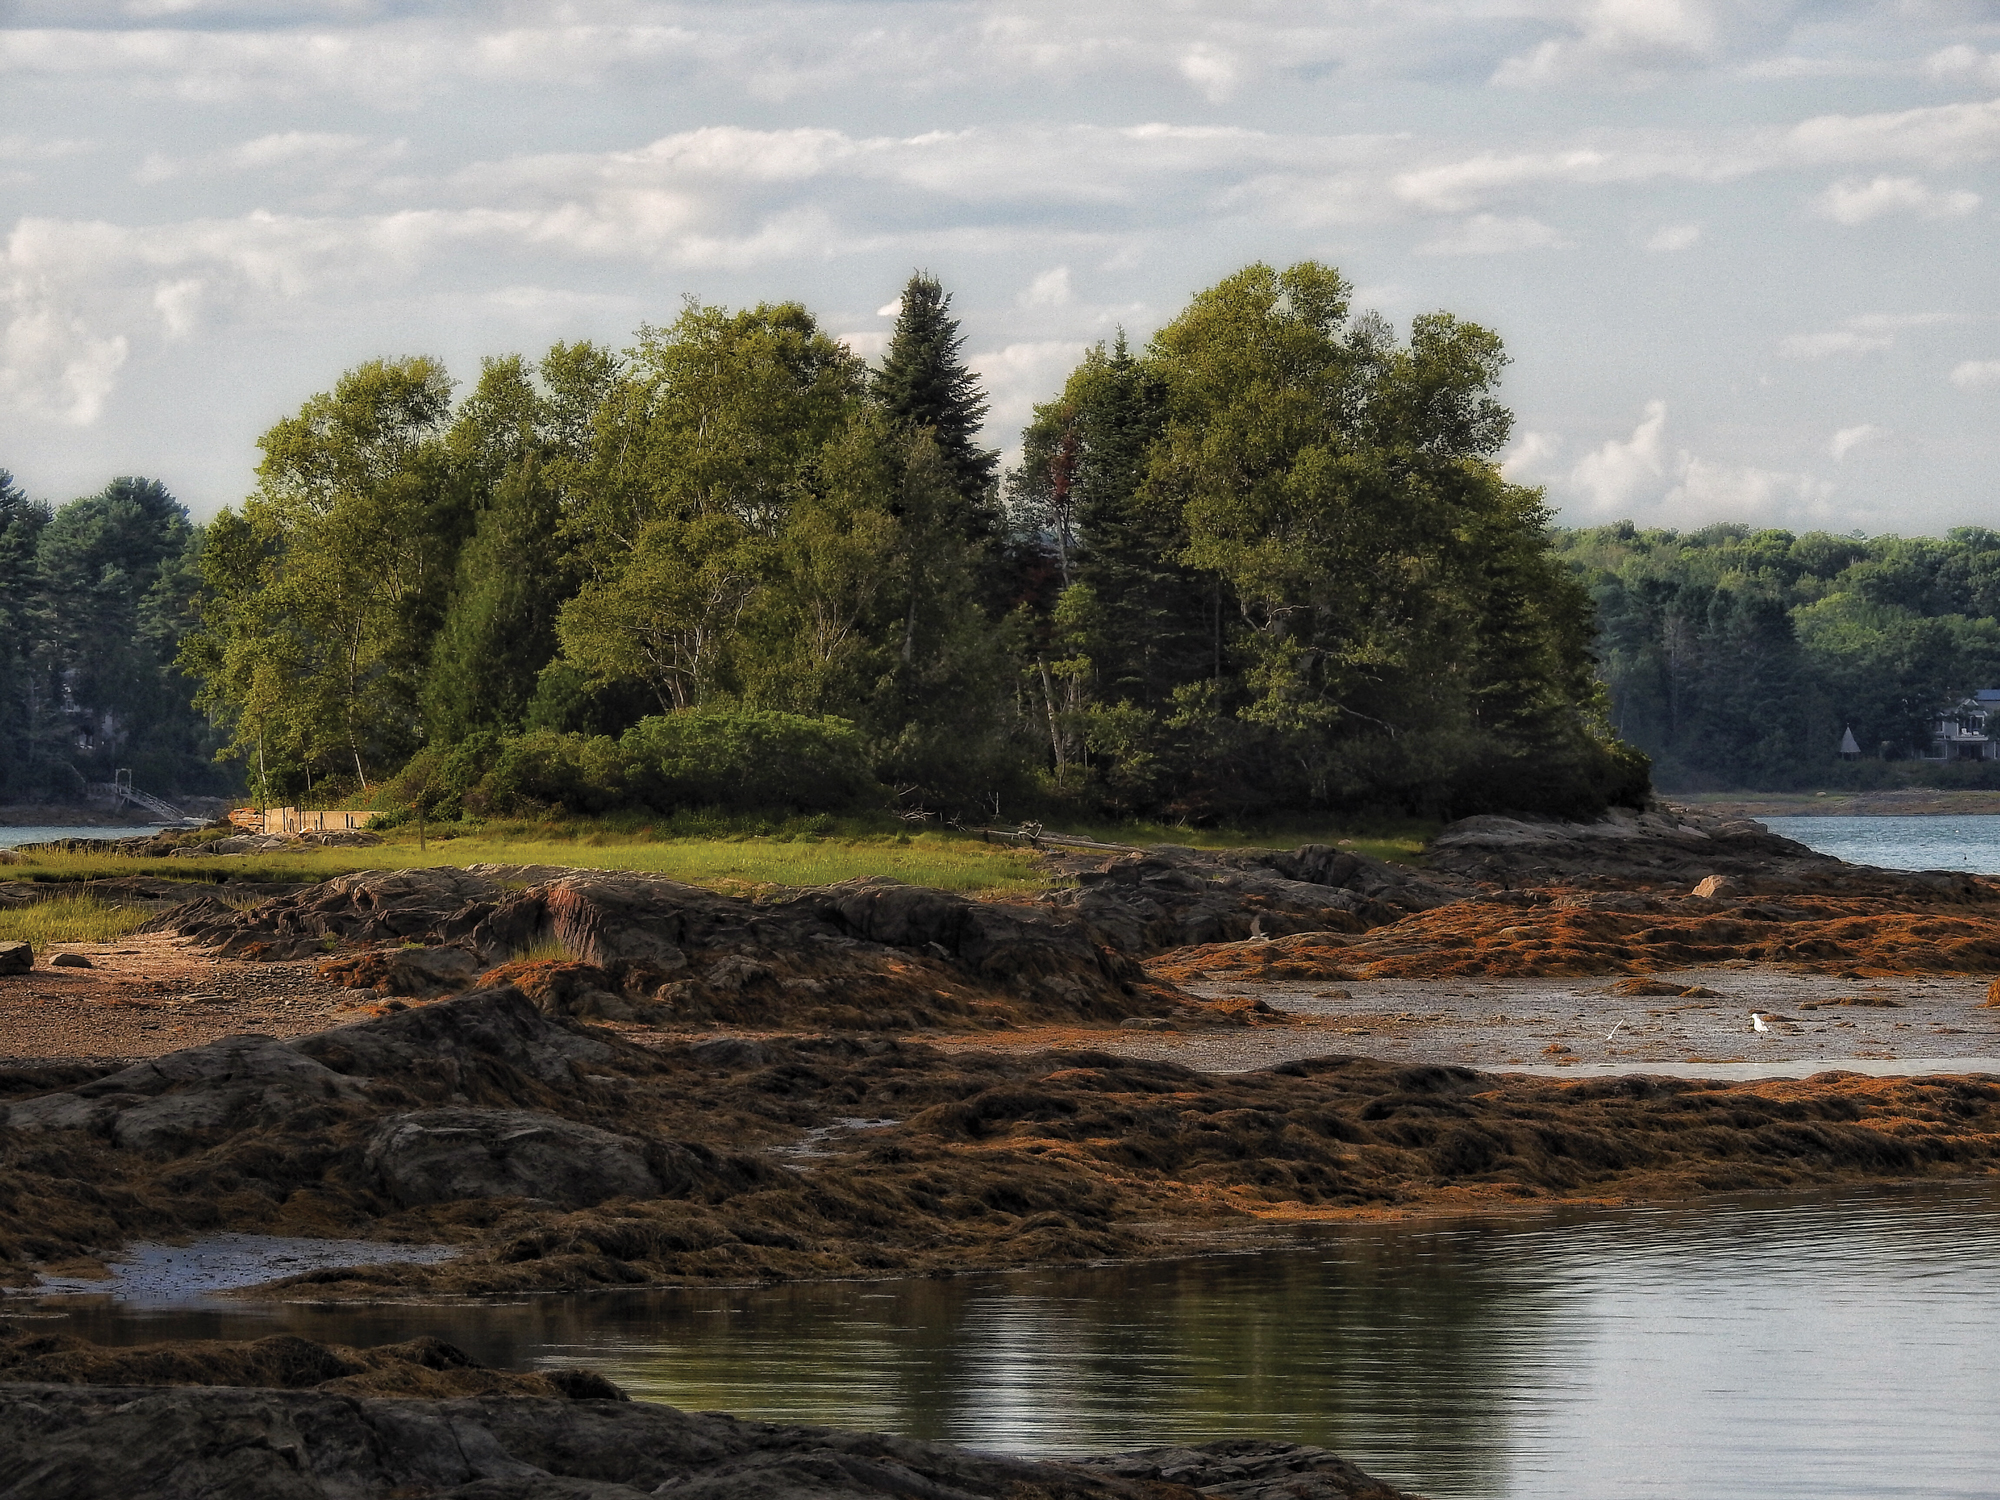 In its later years, kdb's project occasionally mission-creeped into adjacent watersheds. This low-tide shot was taken near Bowdoin College's Schiller Coastal Studies Center, in Harpswell, where researchers examine the effects of climate change on coastal ecosystems.